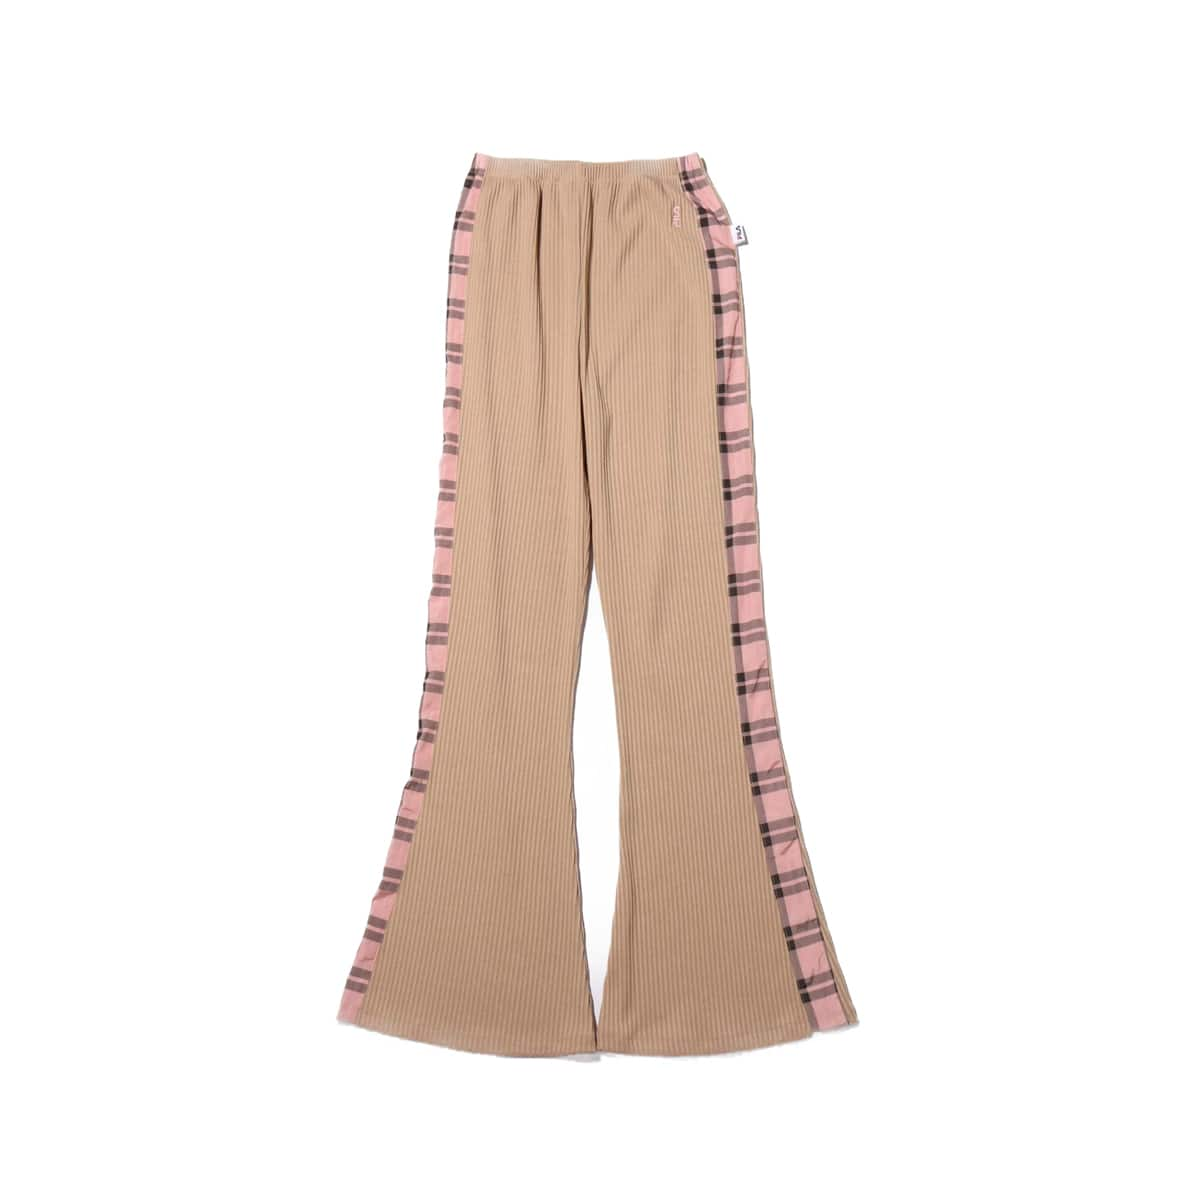 AMI × FILA × atmos pink RIB PANTS BEIGE 19FW-S_photo_large